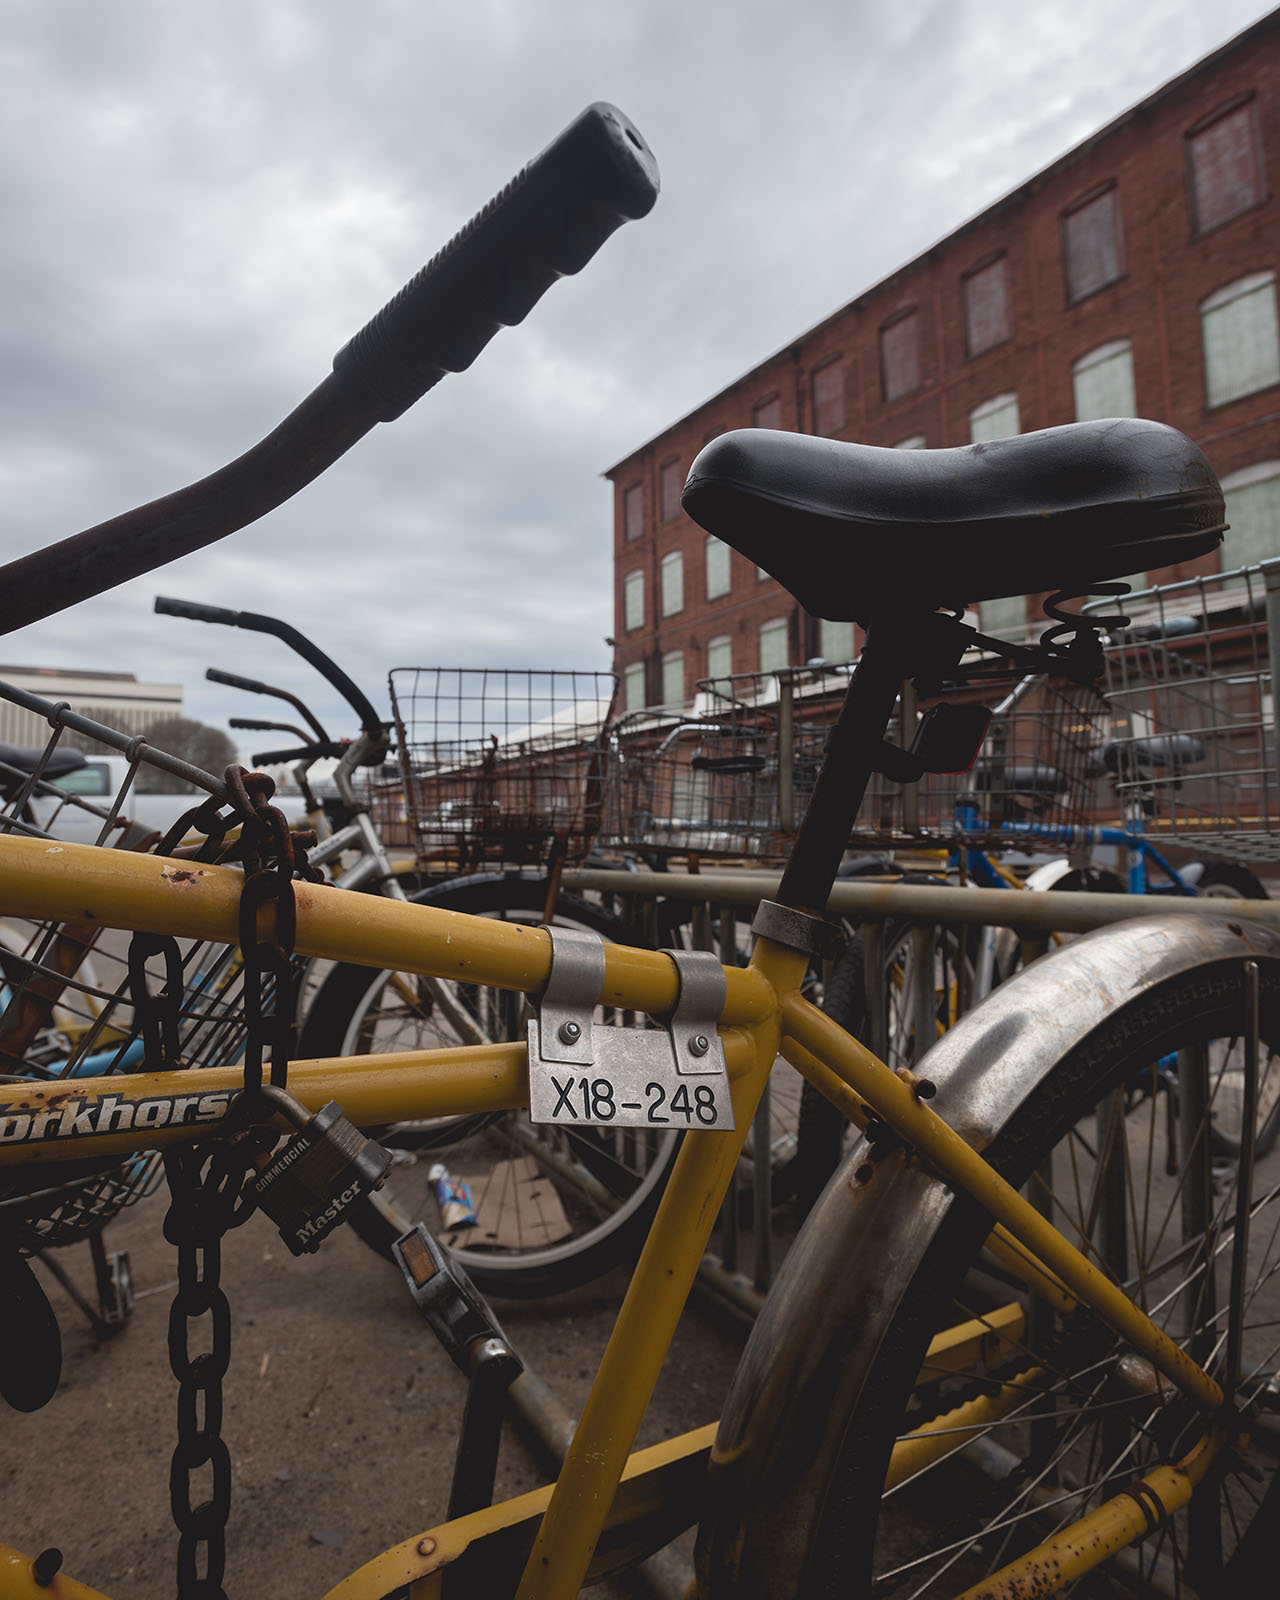 Shipyard bikes wait for their owners as a storm approaches.